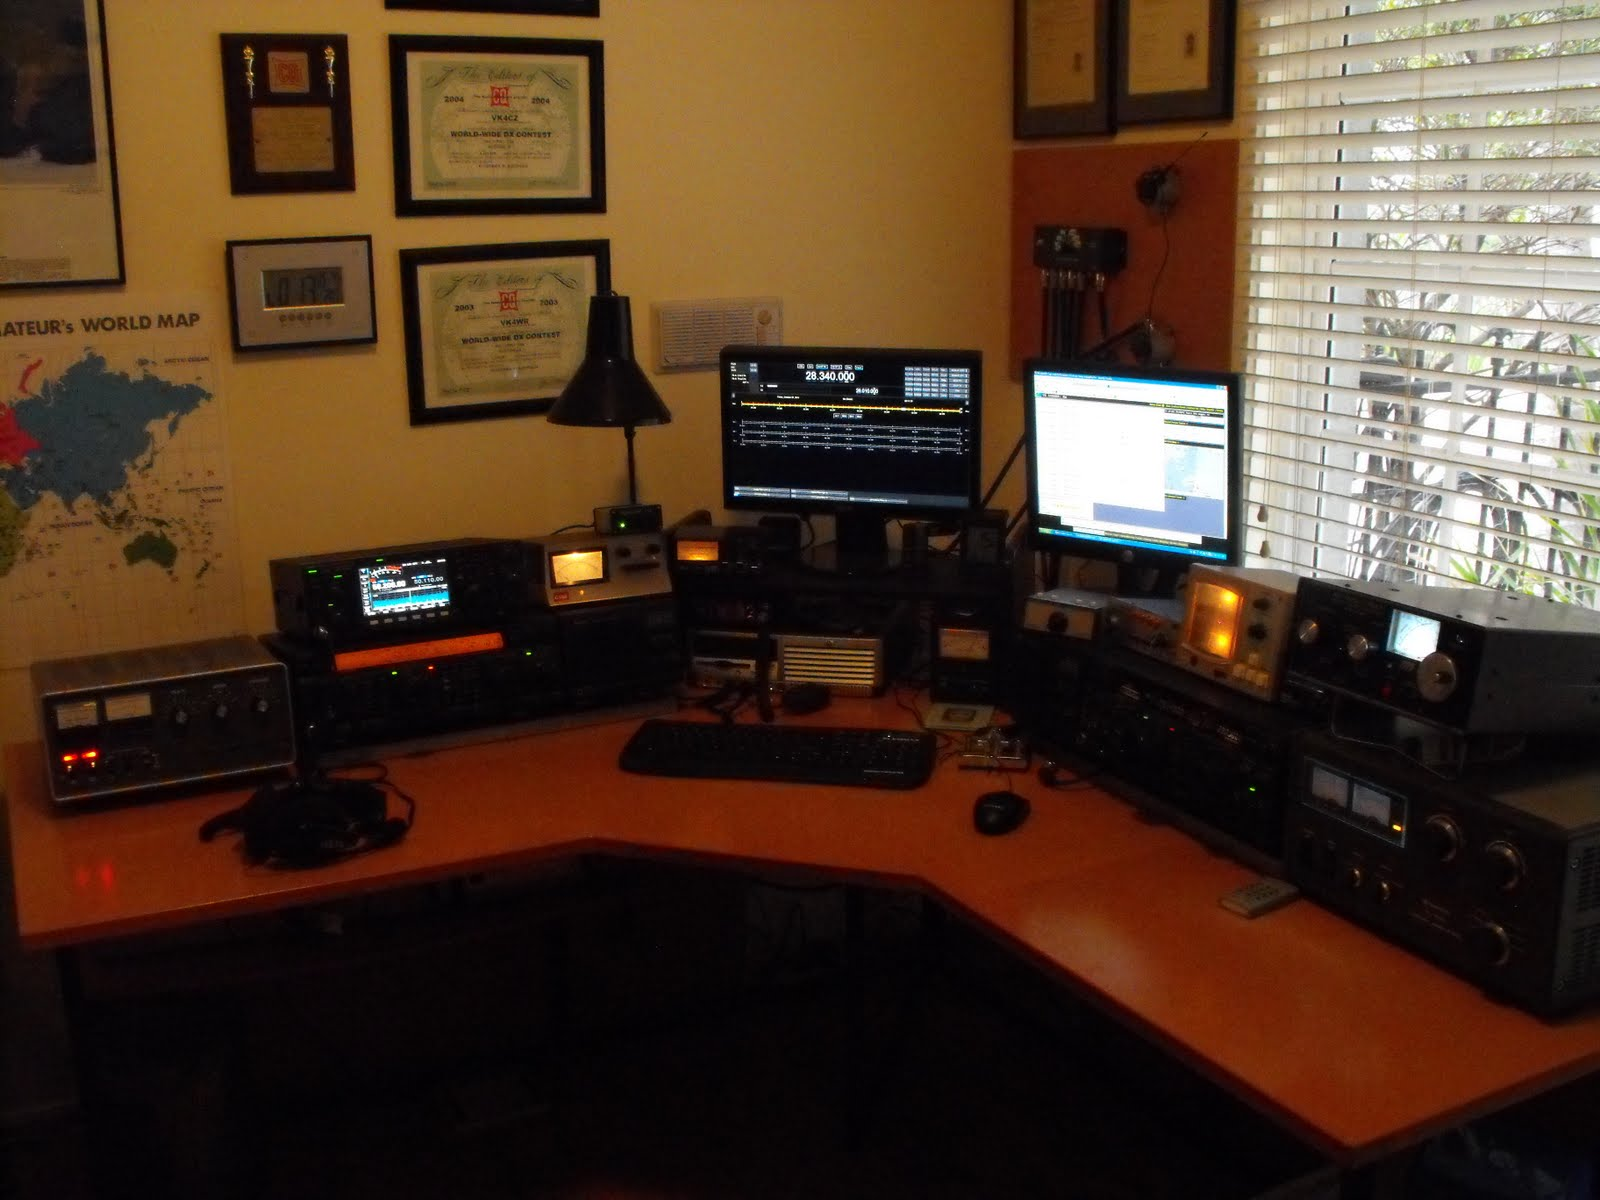 Amateur Radio Station Wb4omm: 50MHz And Contest Amateur Radio Station: October 2011